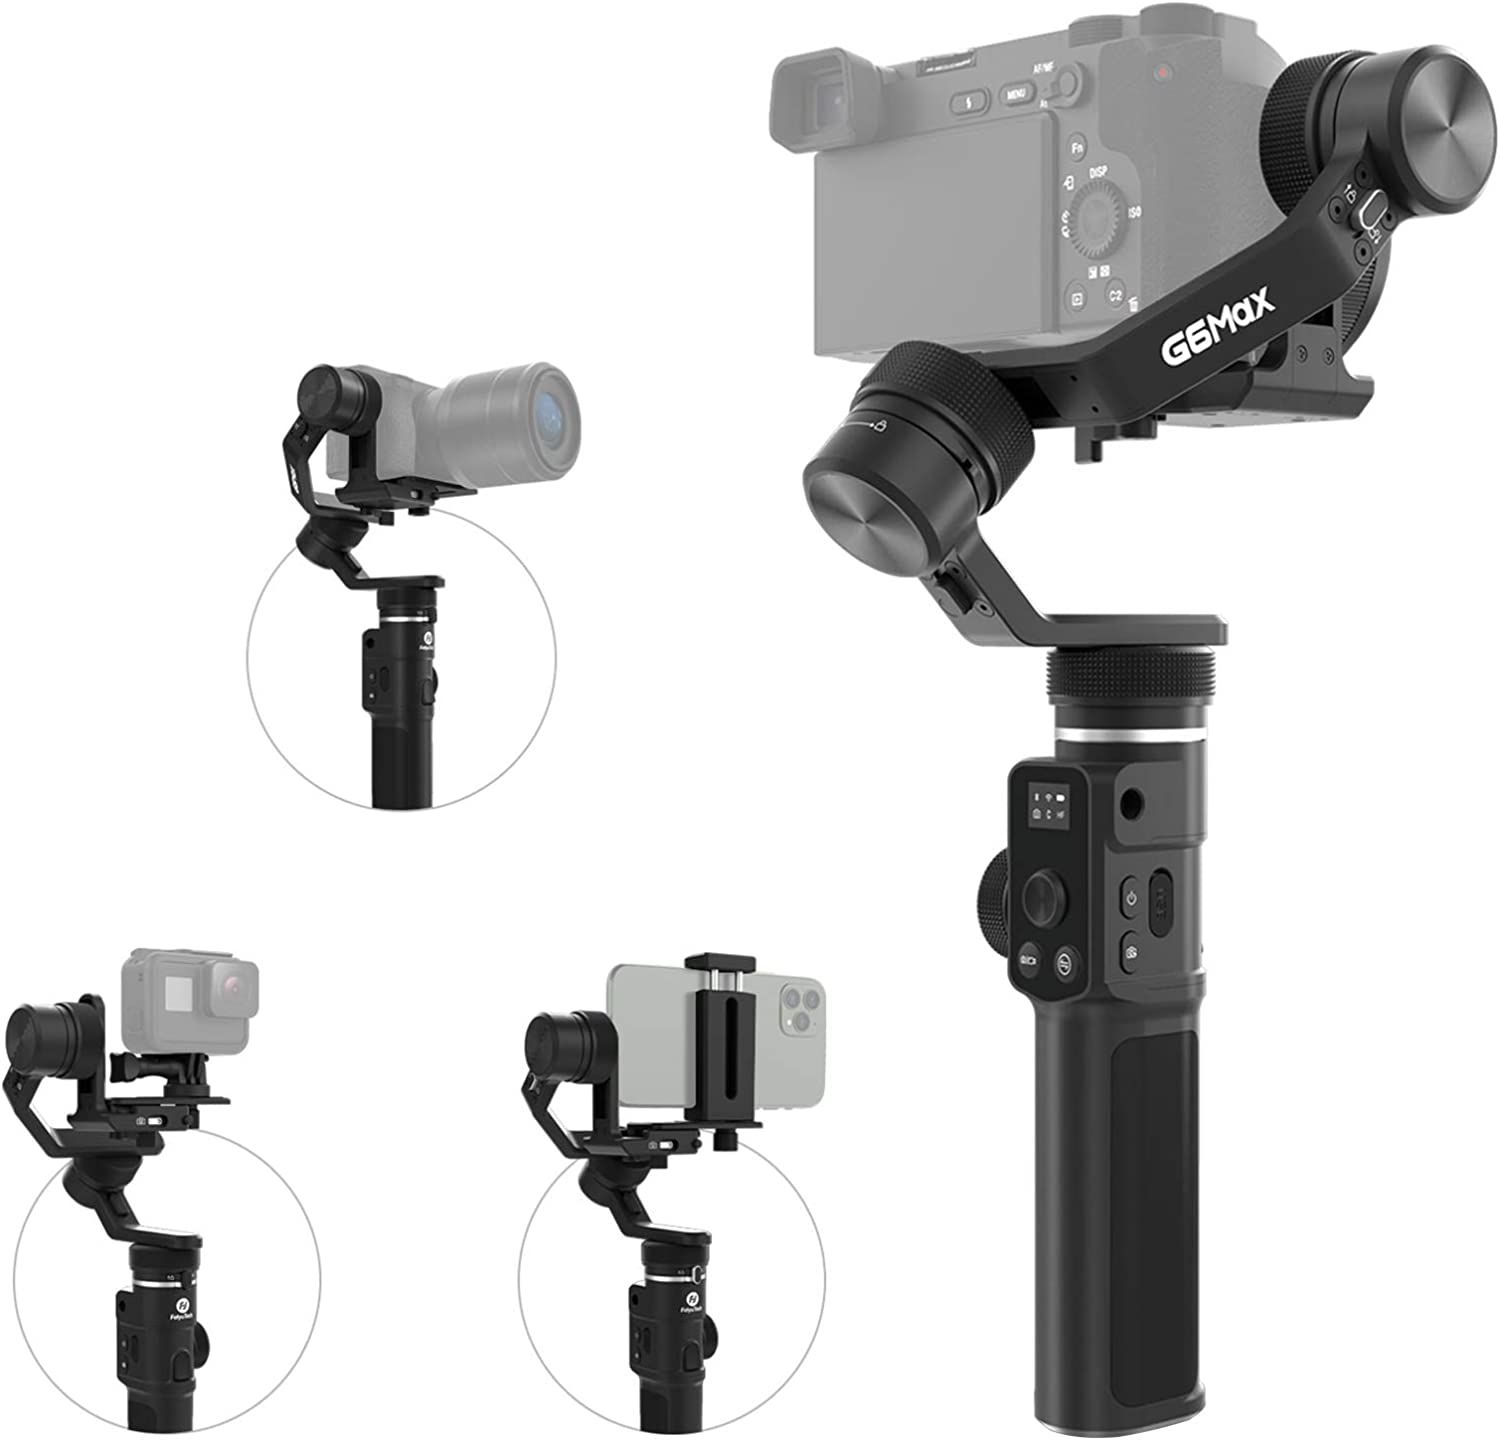 FeiyuTech G6 5 ☆ very popular Max 4-in-1 Gimbal Stabilizer Handheld Ranking TOP16 3-Axis Comp